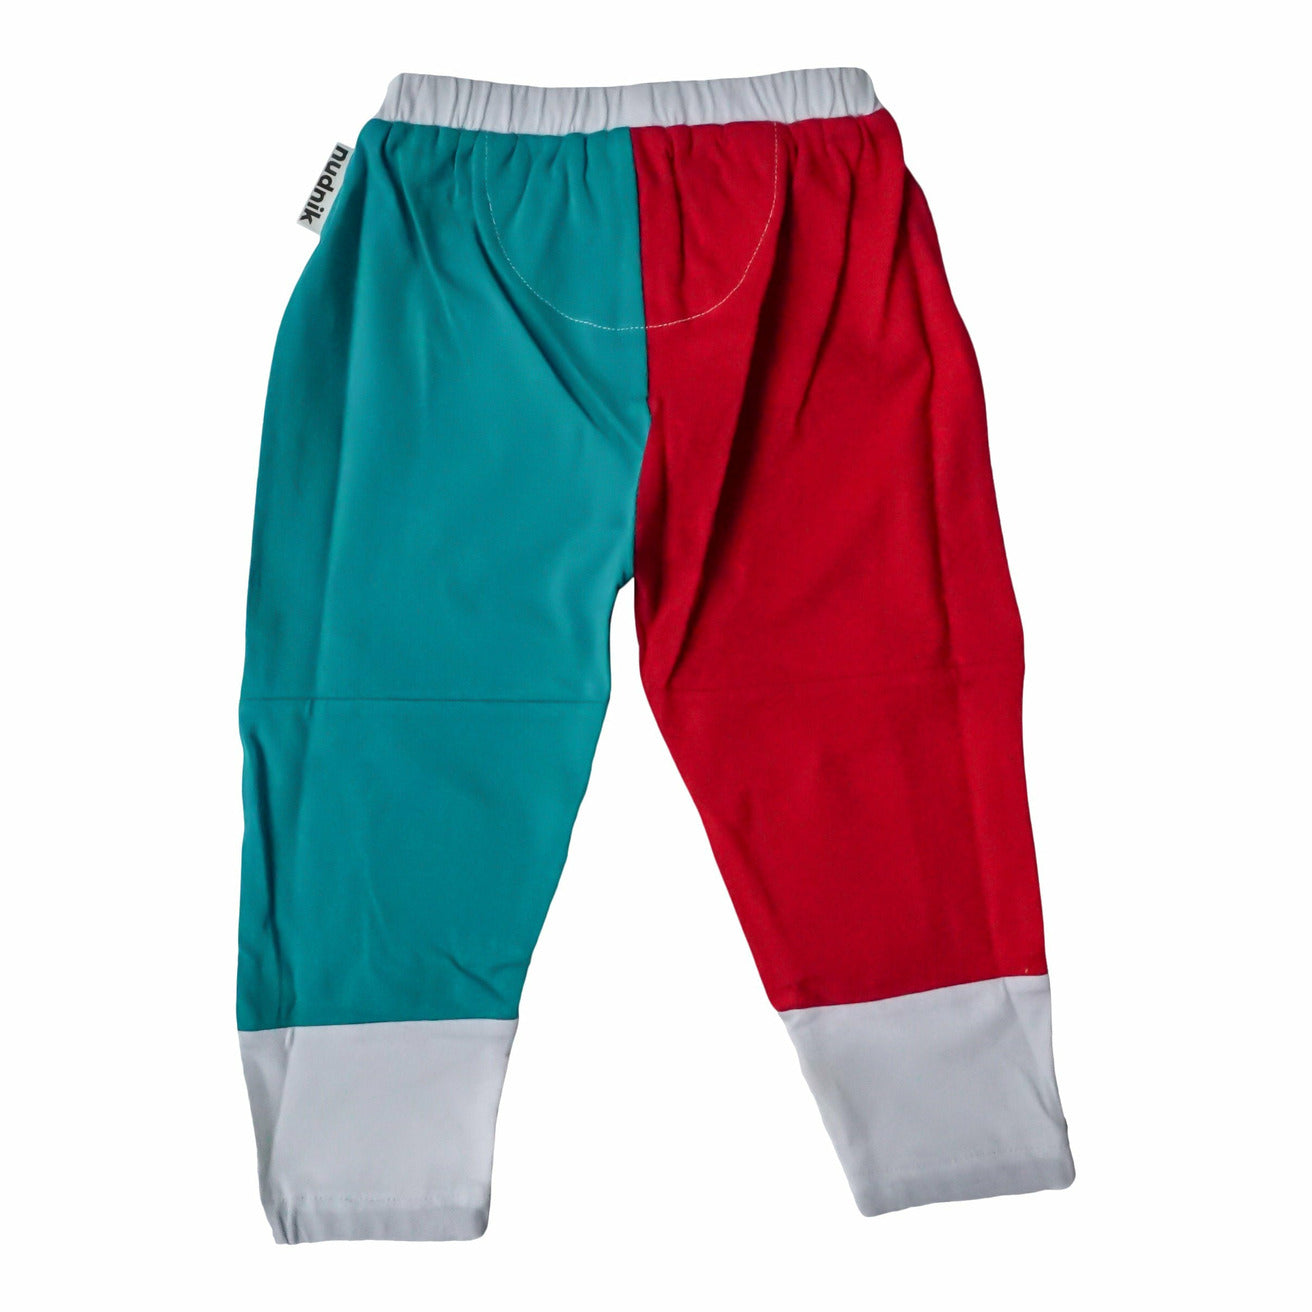 CREATOR PLAYPANT in Roaring Red + Treat Teal - NUDNIK